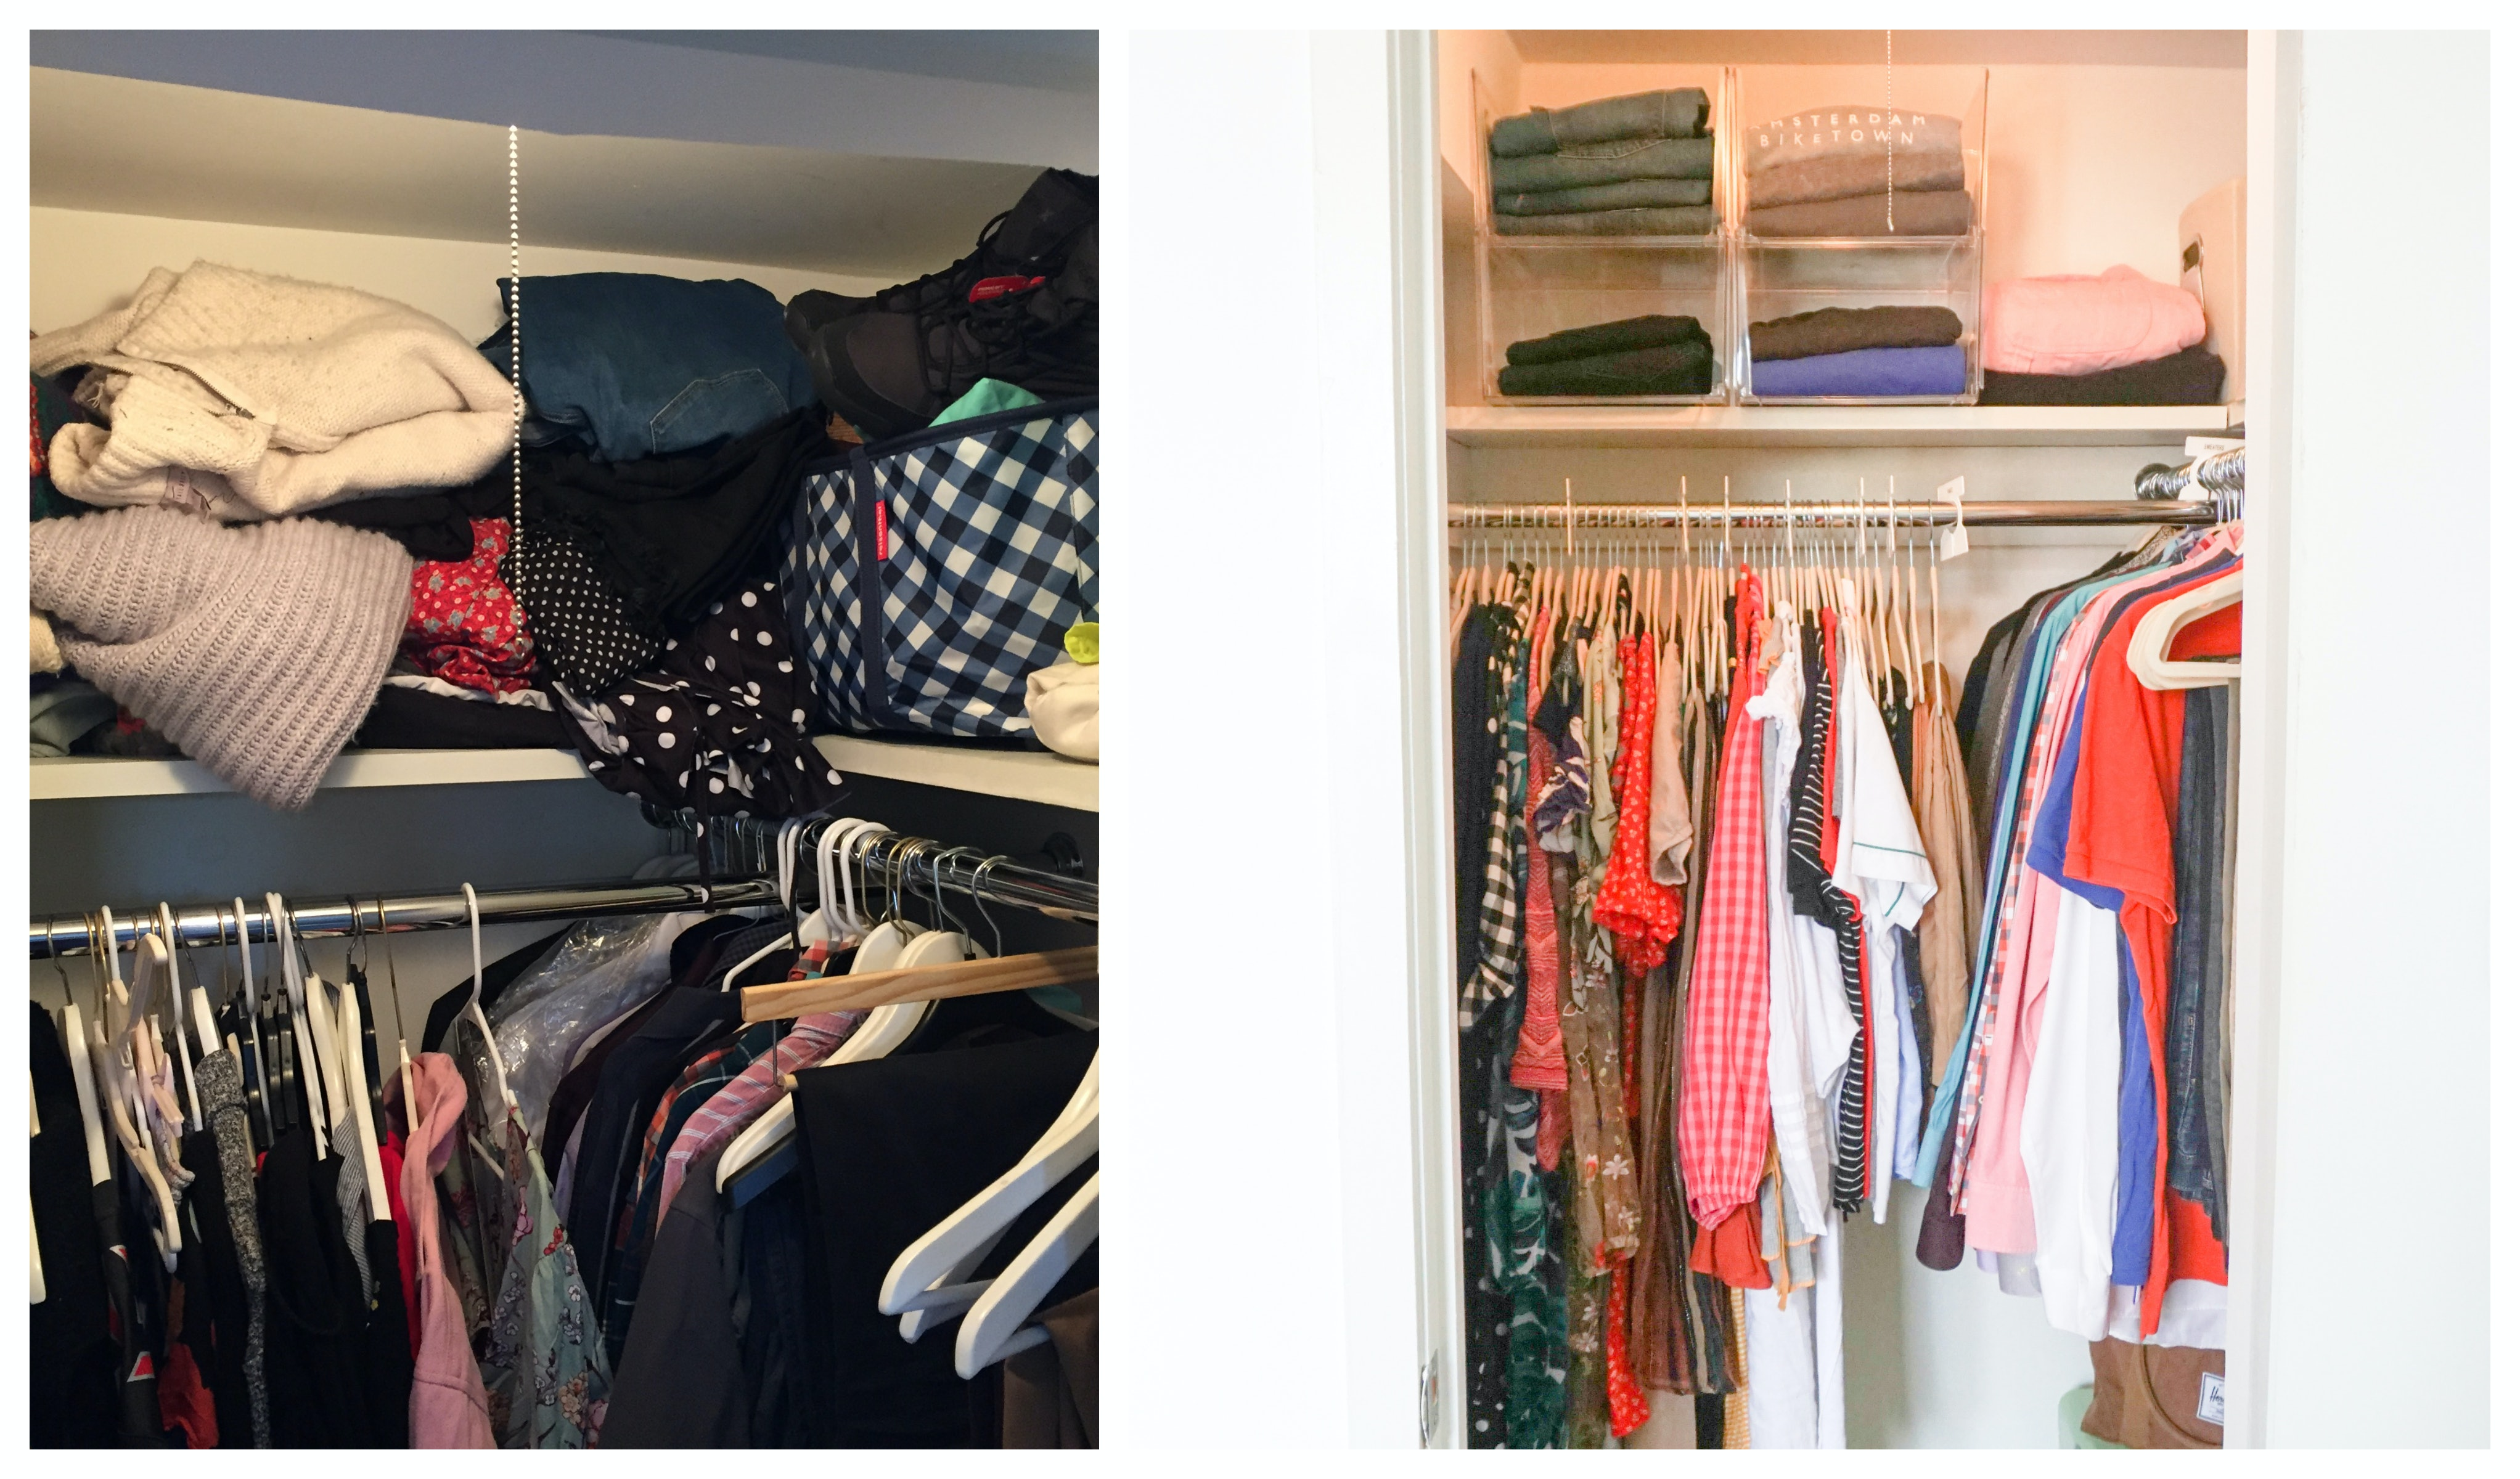 How To Organize A Small Closet According To A Professional Organizer,Bloody Mary